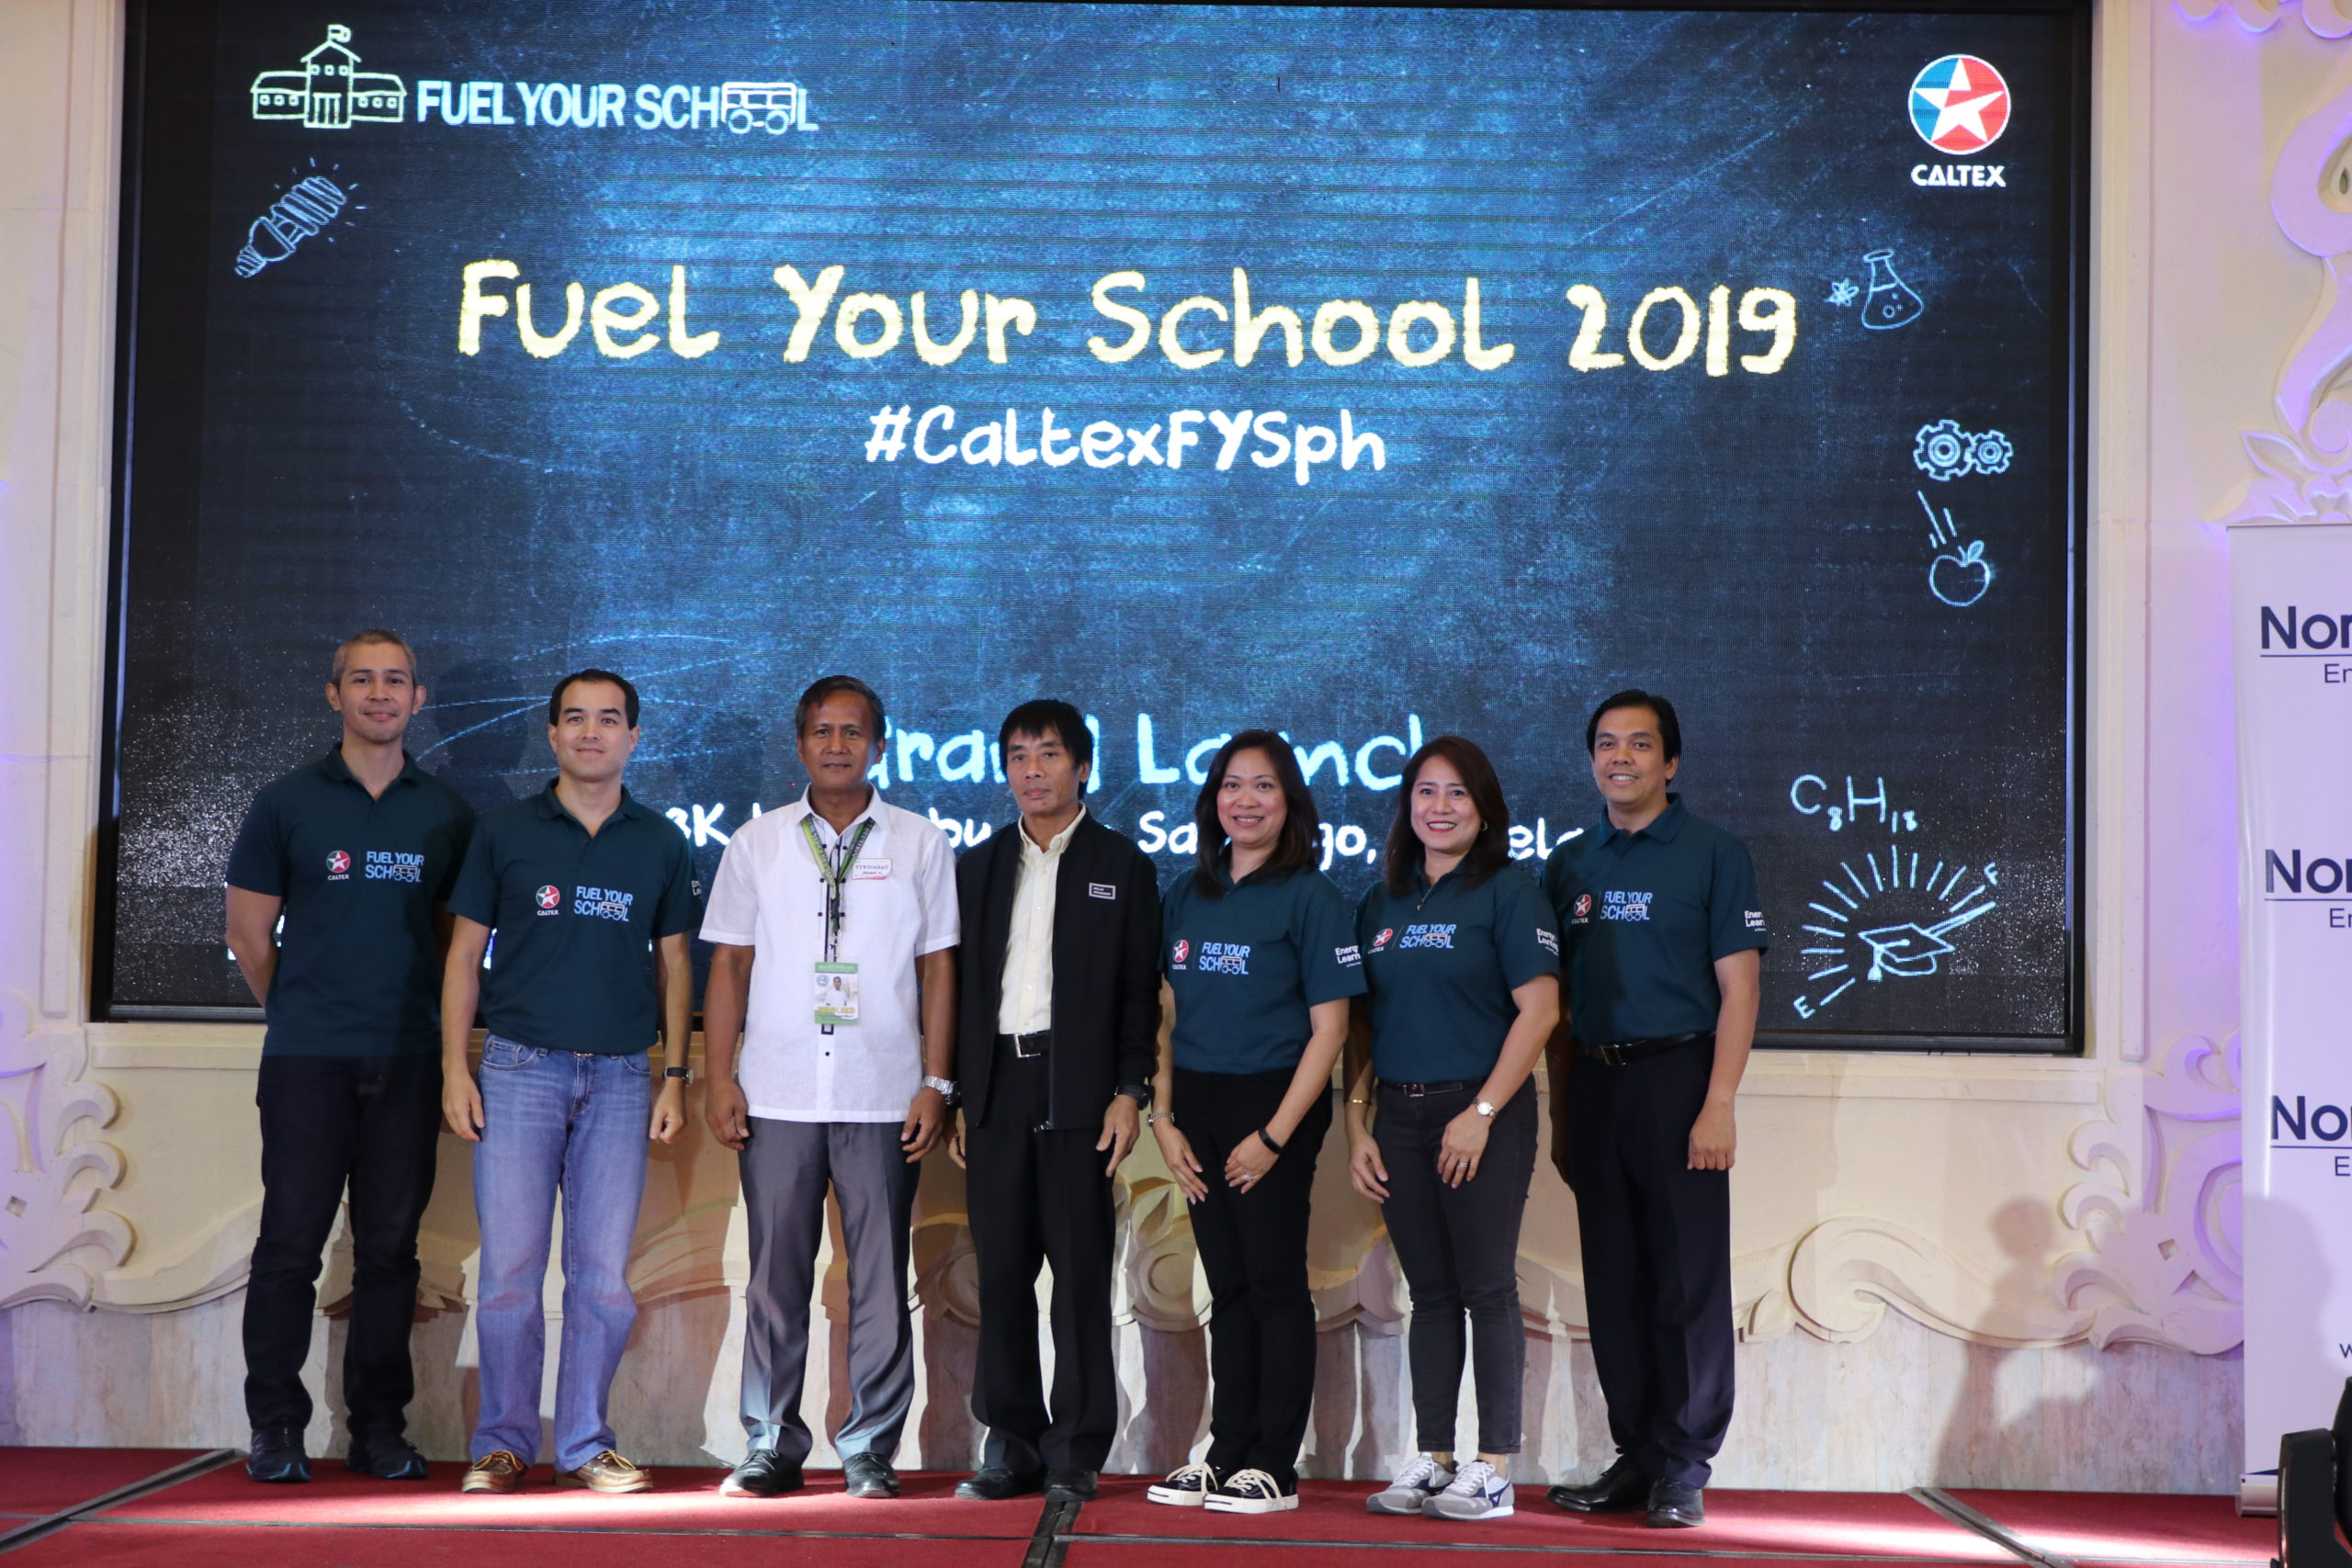 Caltex Fuel Your School boosts STEM education in Cagayan Valley and CAR through fuel ups in Caltex